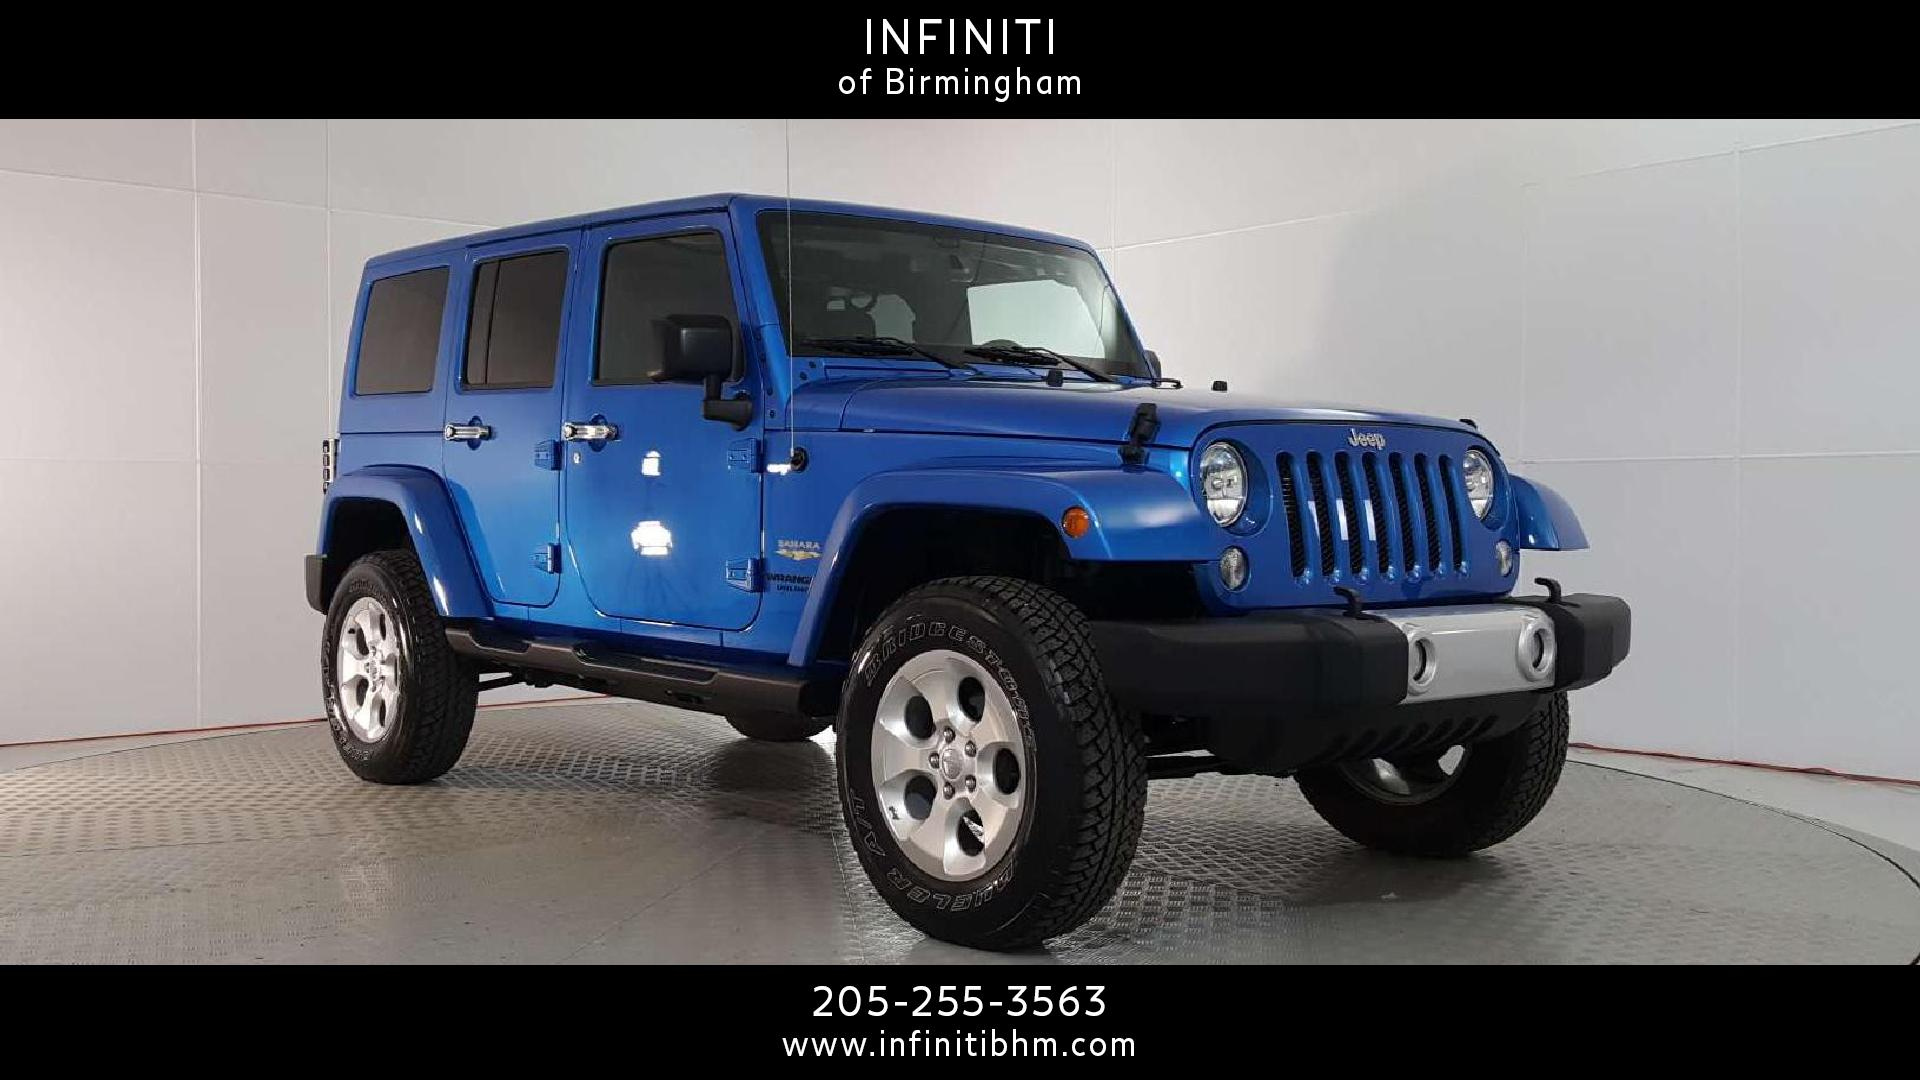 Hoover Jeep Wrangler Unlimited Vehicles for Sale